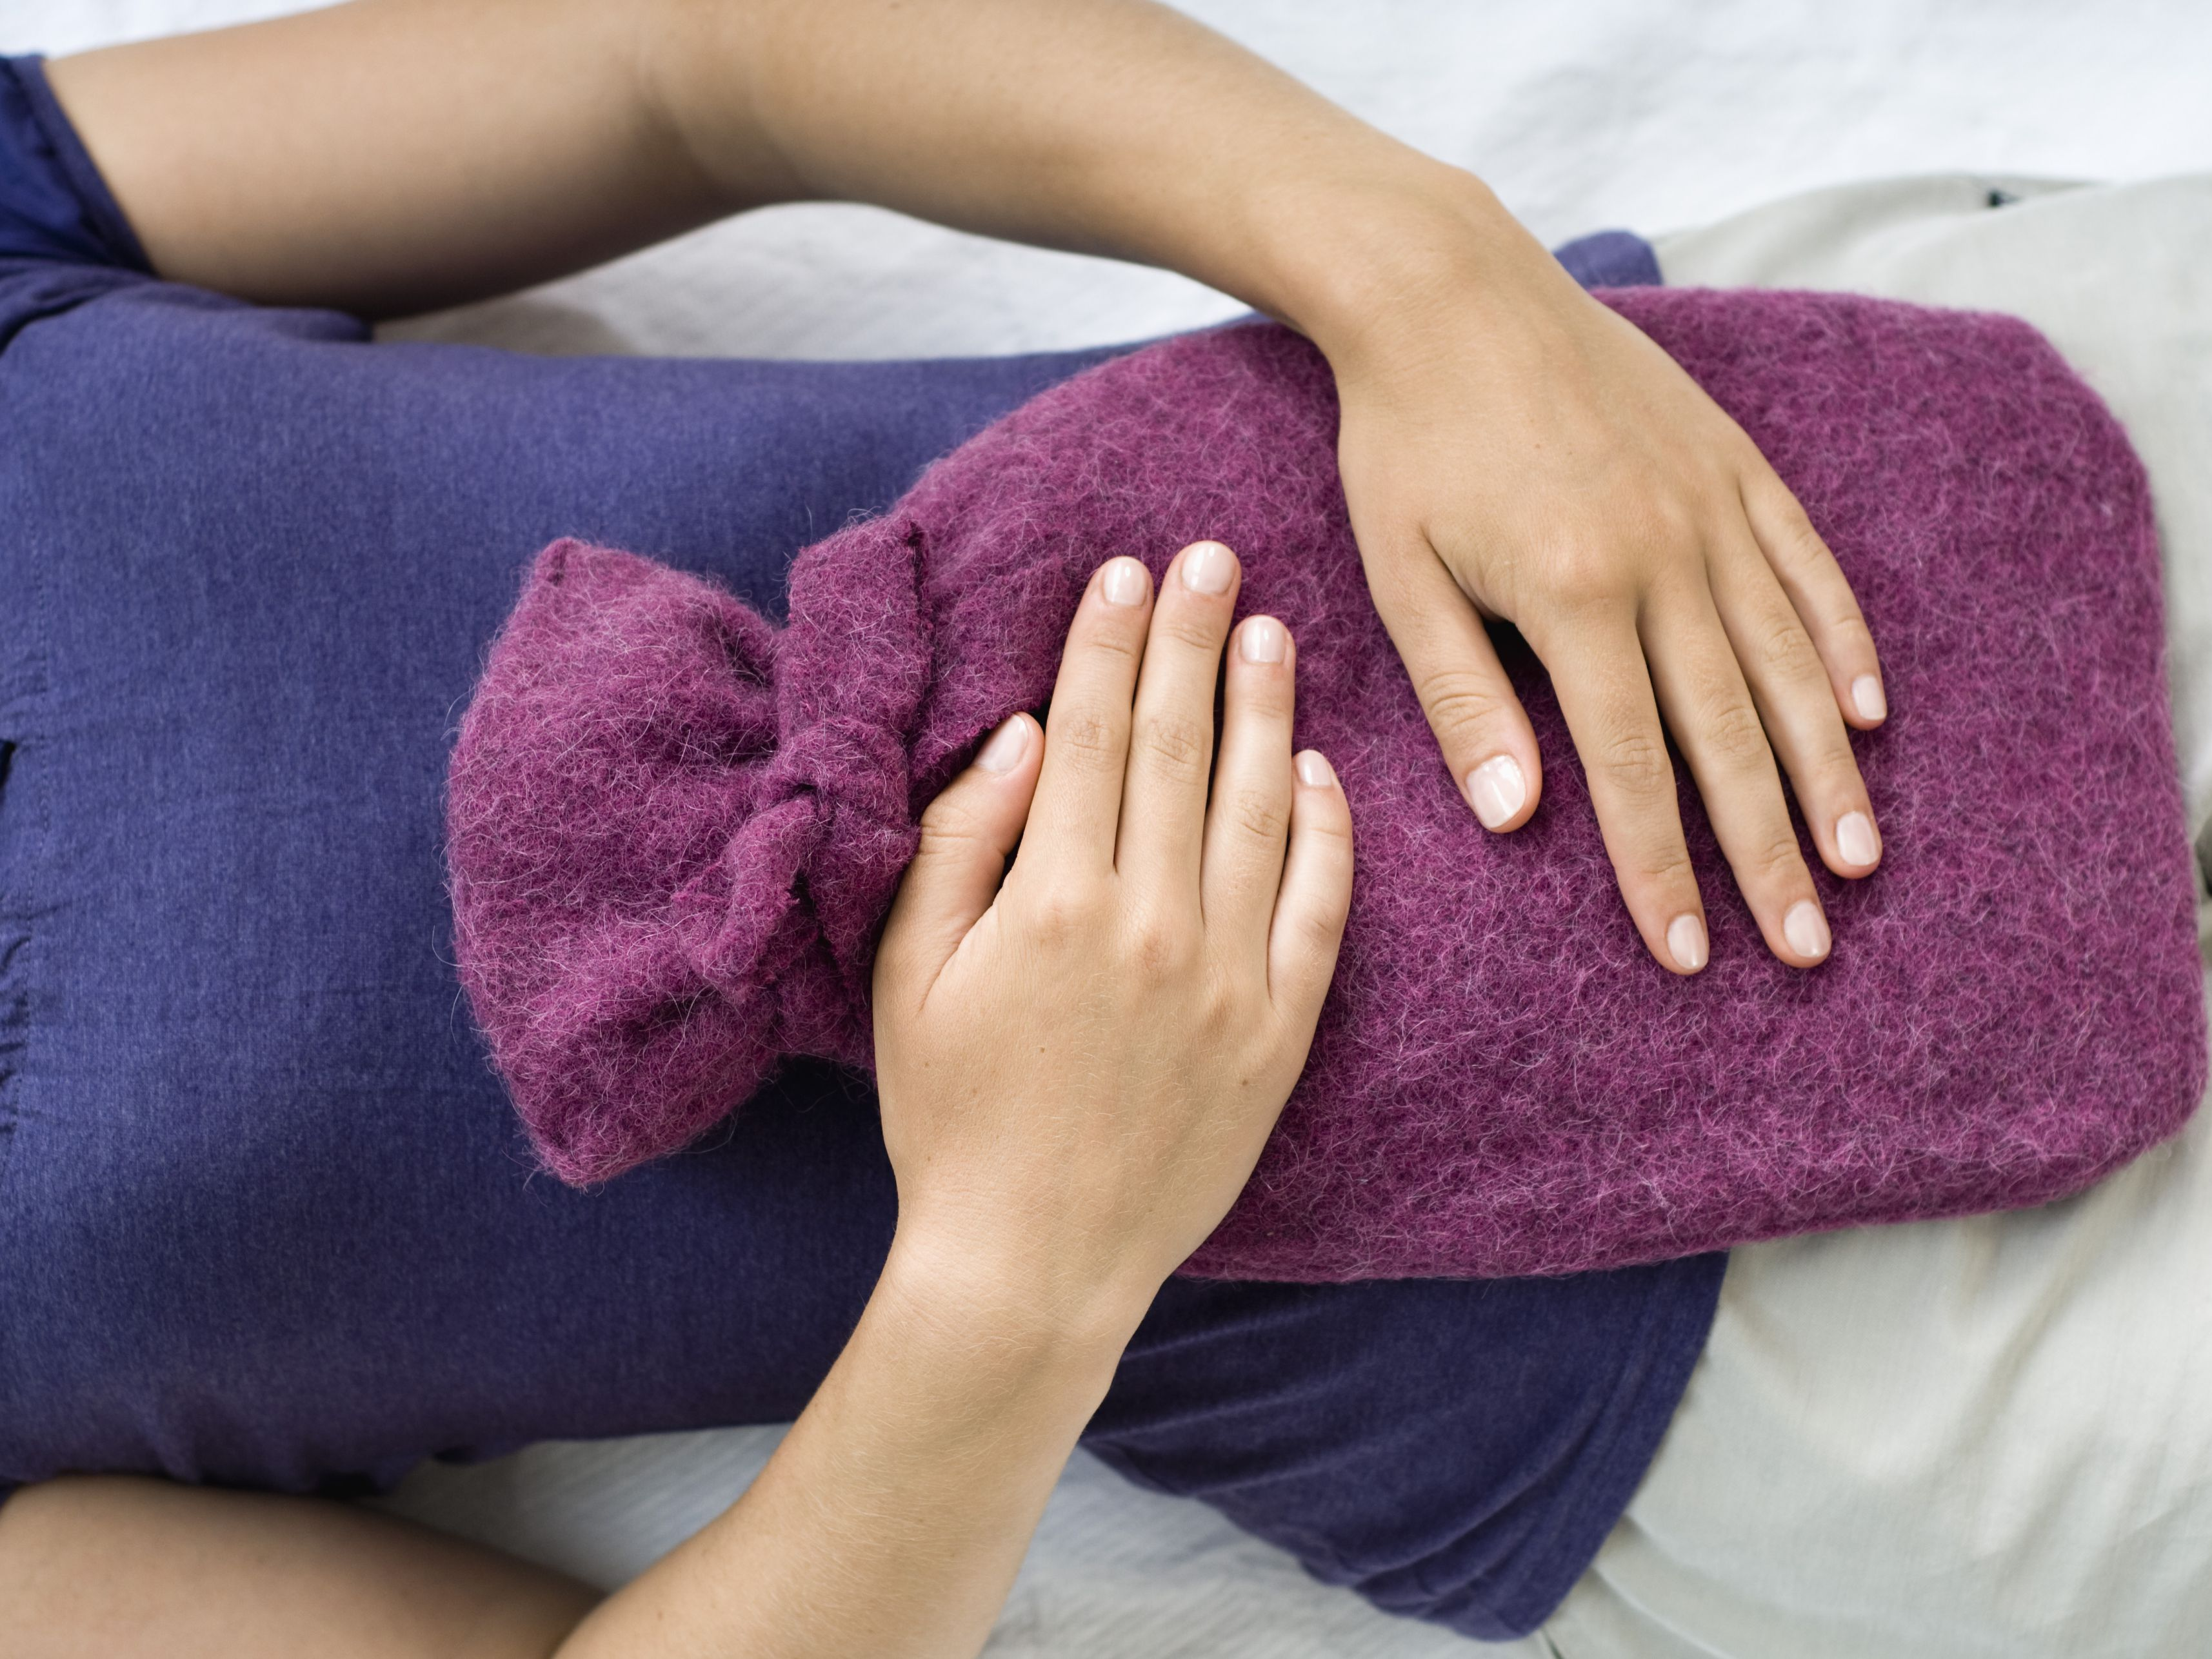 Women Have Many Treatment Options for Dealing With Painful Periods